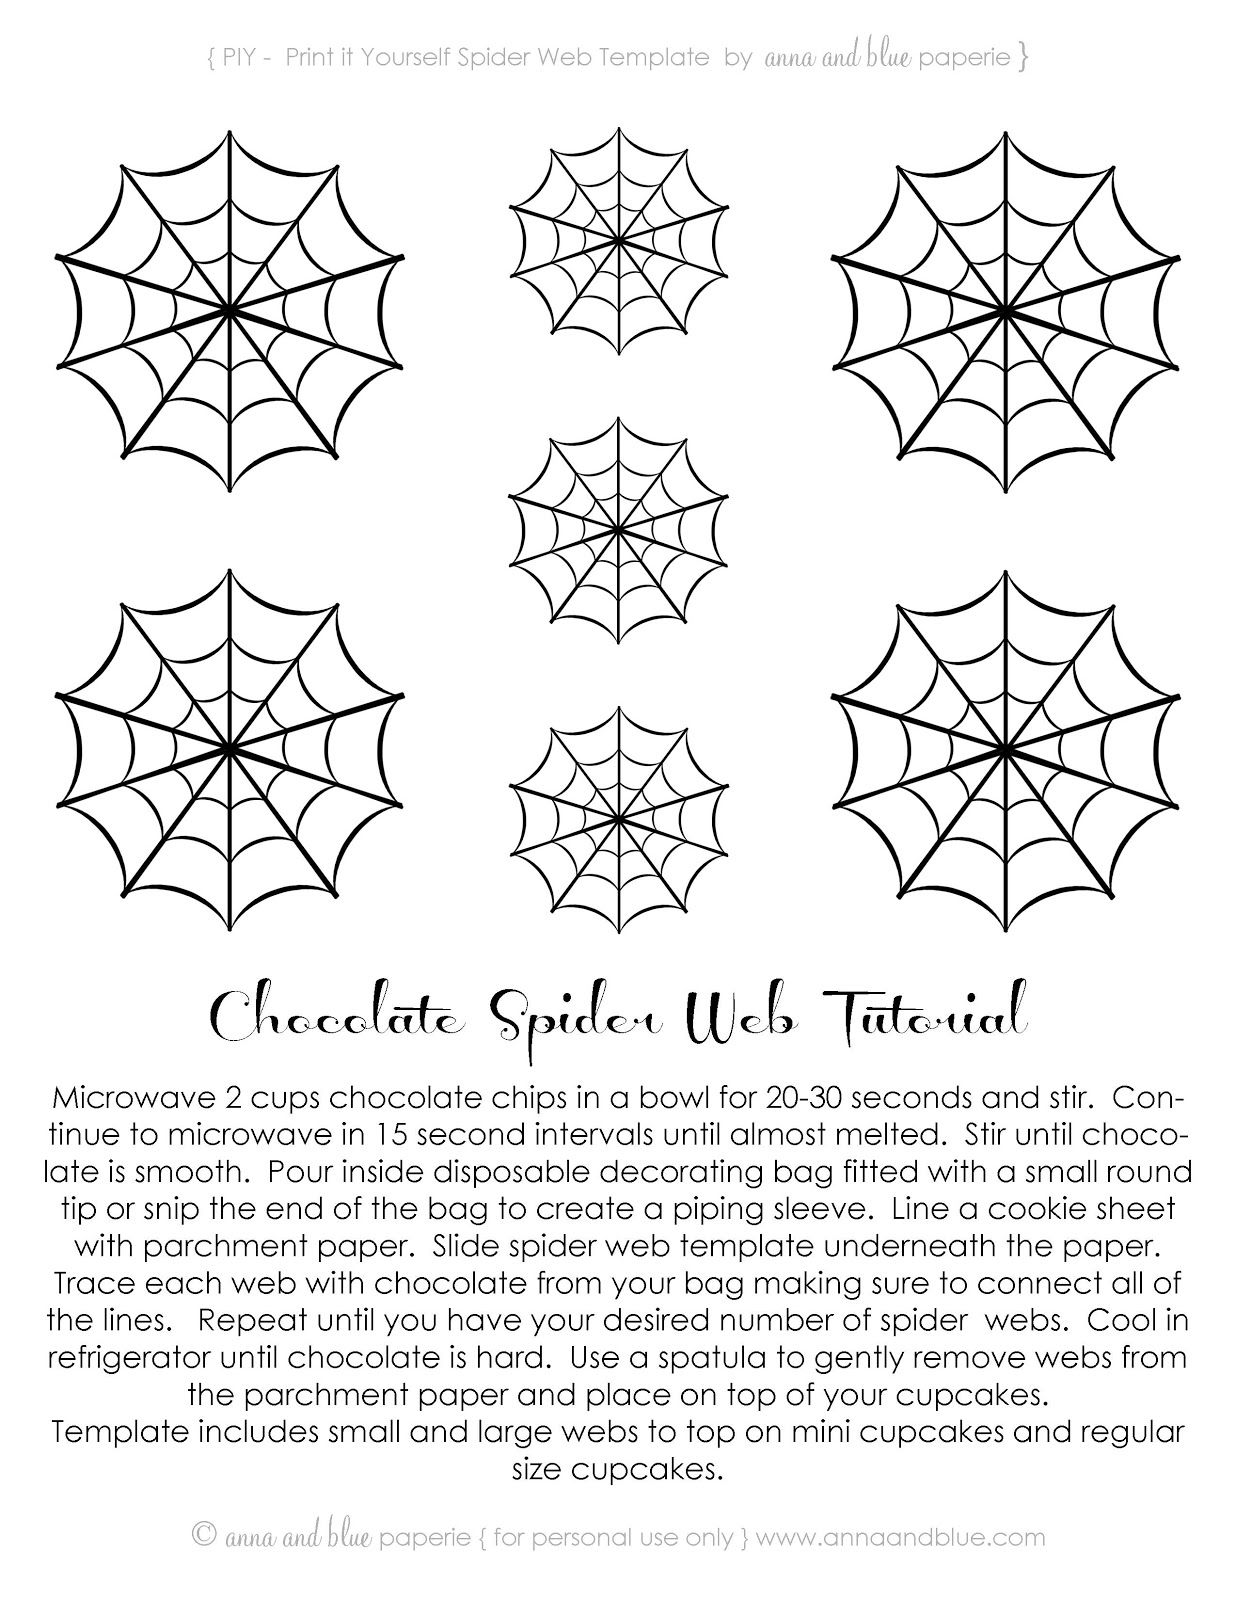 Free Printable Chocolate Spider Web Tutorial